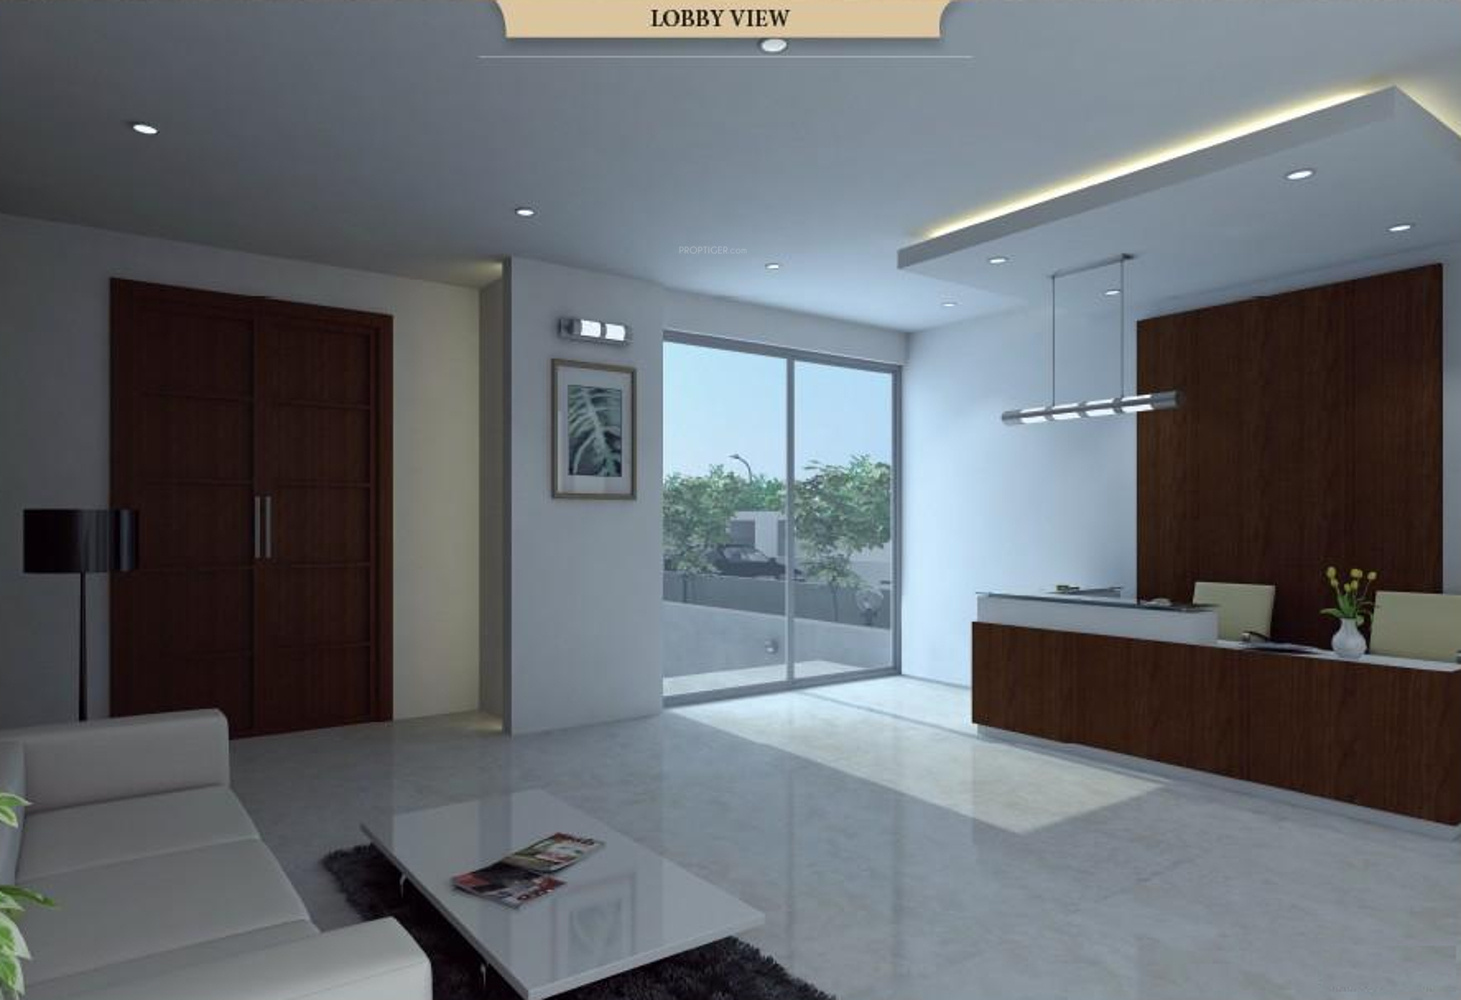 4526 Sq Ft 4 BHK 5T Apartment For Sale In Prestige Group Deja Vu Frazer Town Bangalore